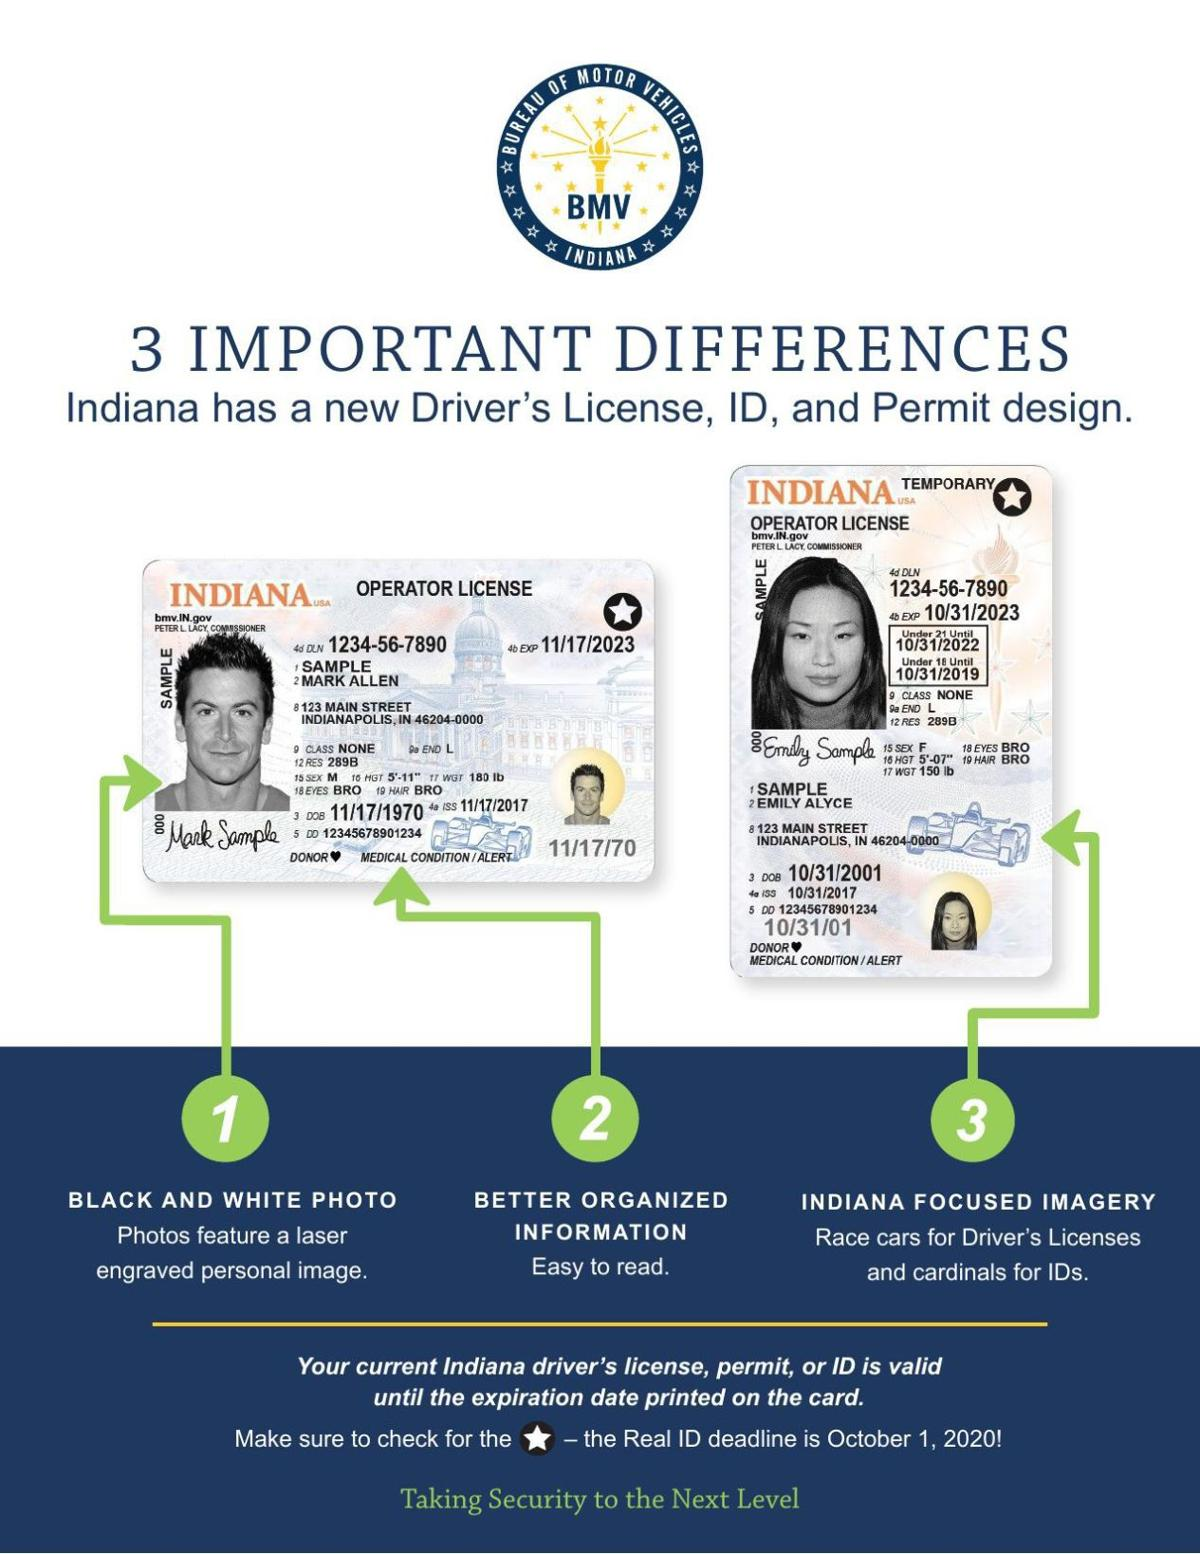 Highlights of new Indiana driver's license and state ID cards